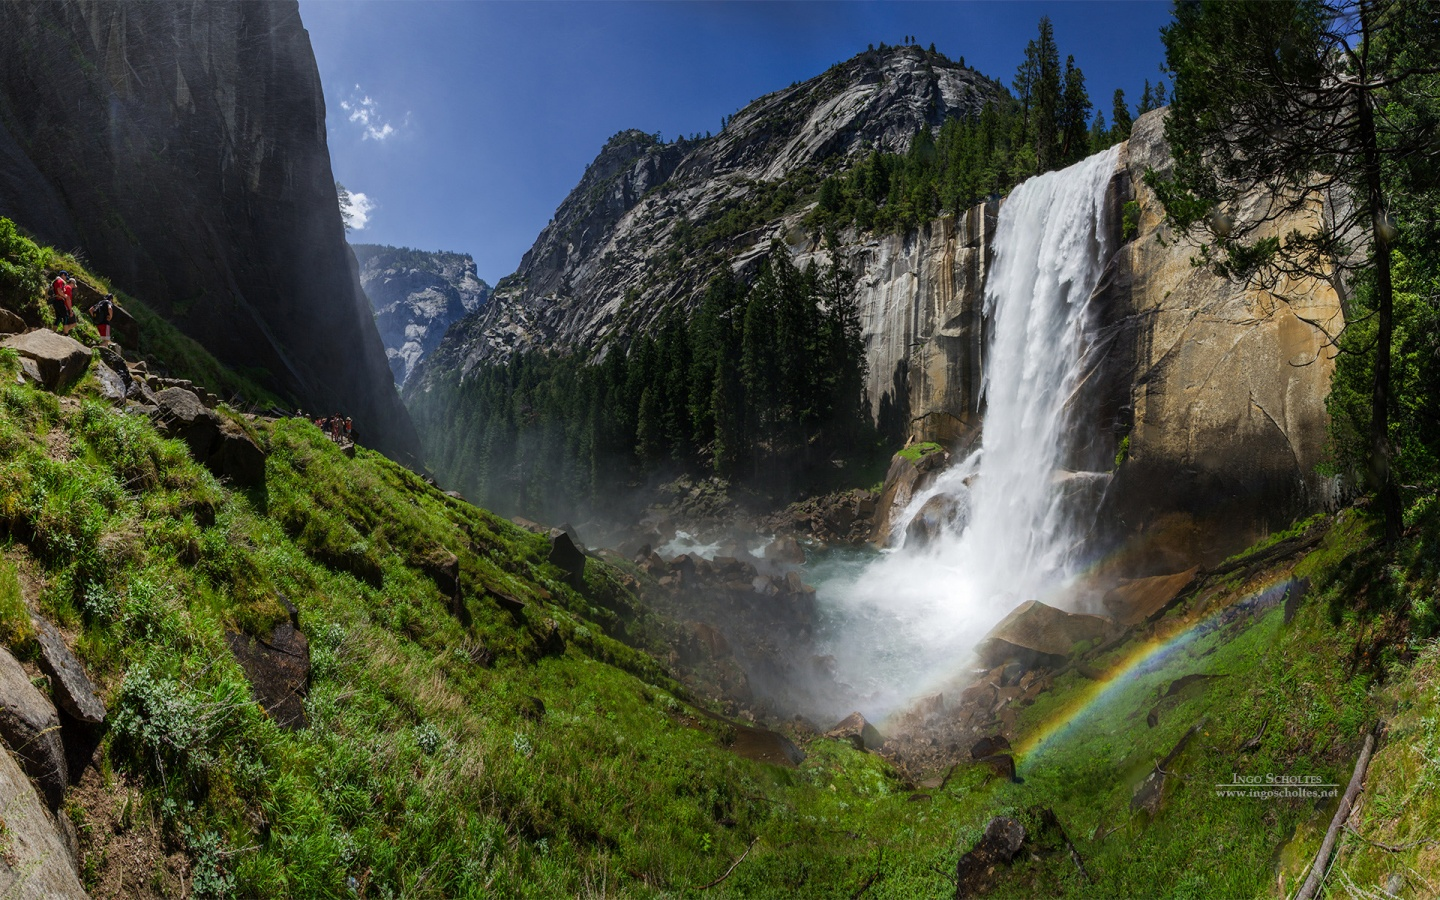 Vernal Fall Yosemite National Park Wallpapers HD Wallpapers 1440x900